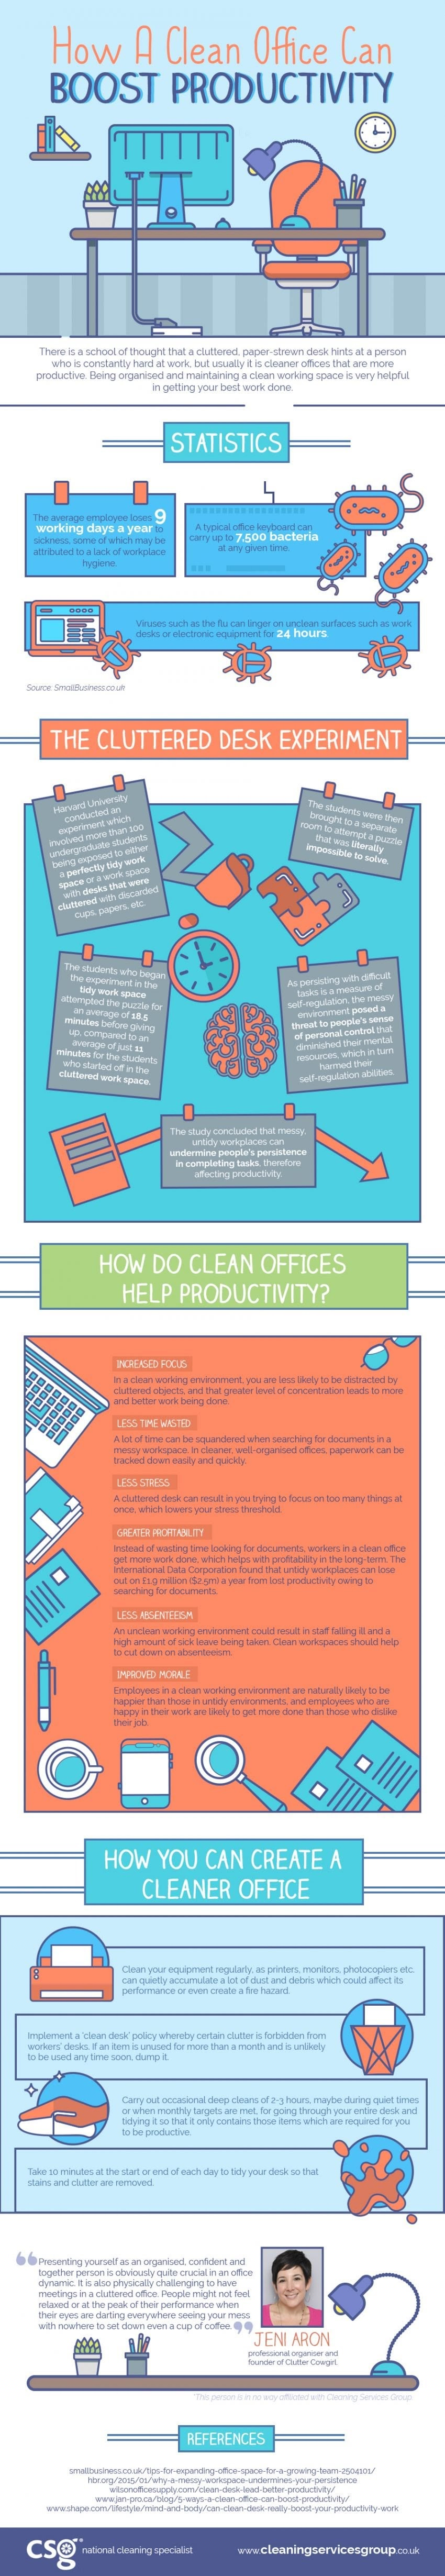 How a Clean Office Can Boost Productivity - #infographic